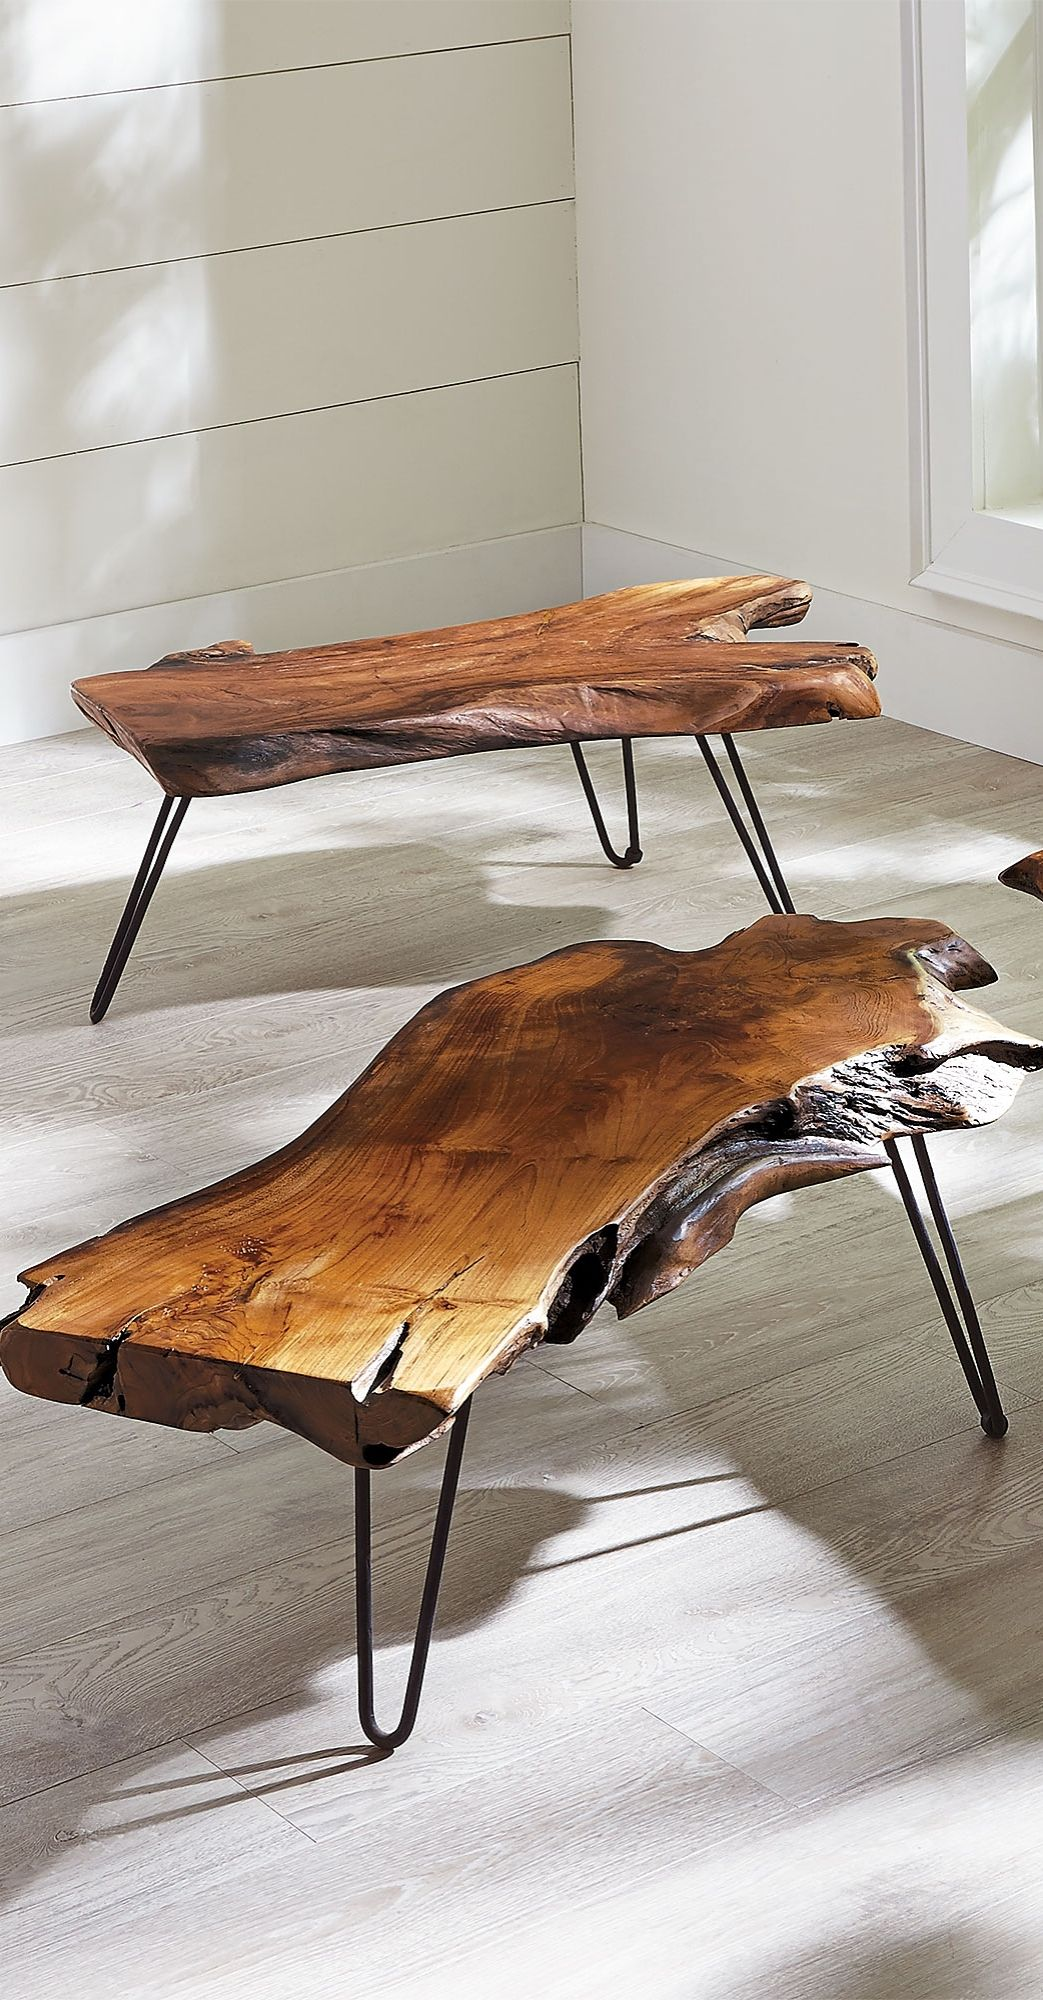 Teak Coffee Table. #mesas de Centor # raices de Teka Fabulous See ...